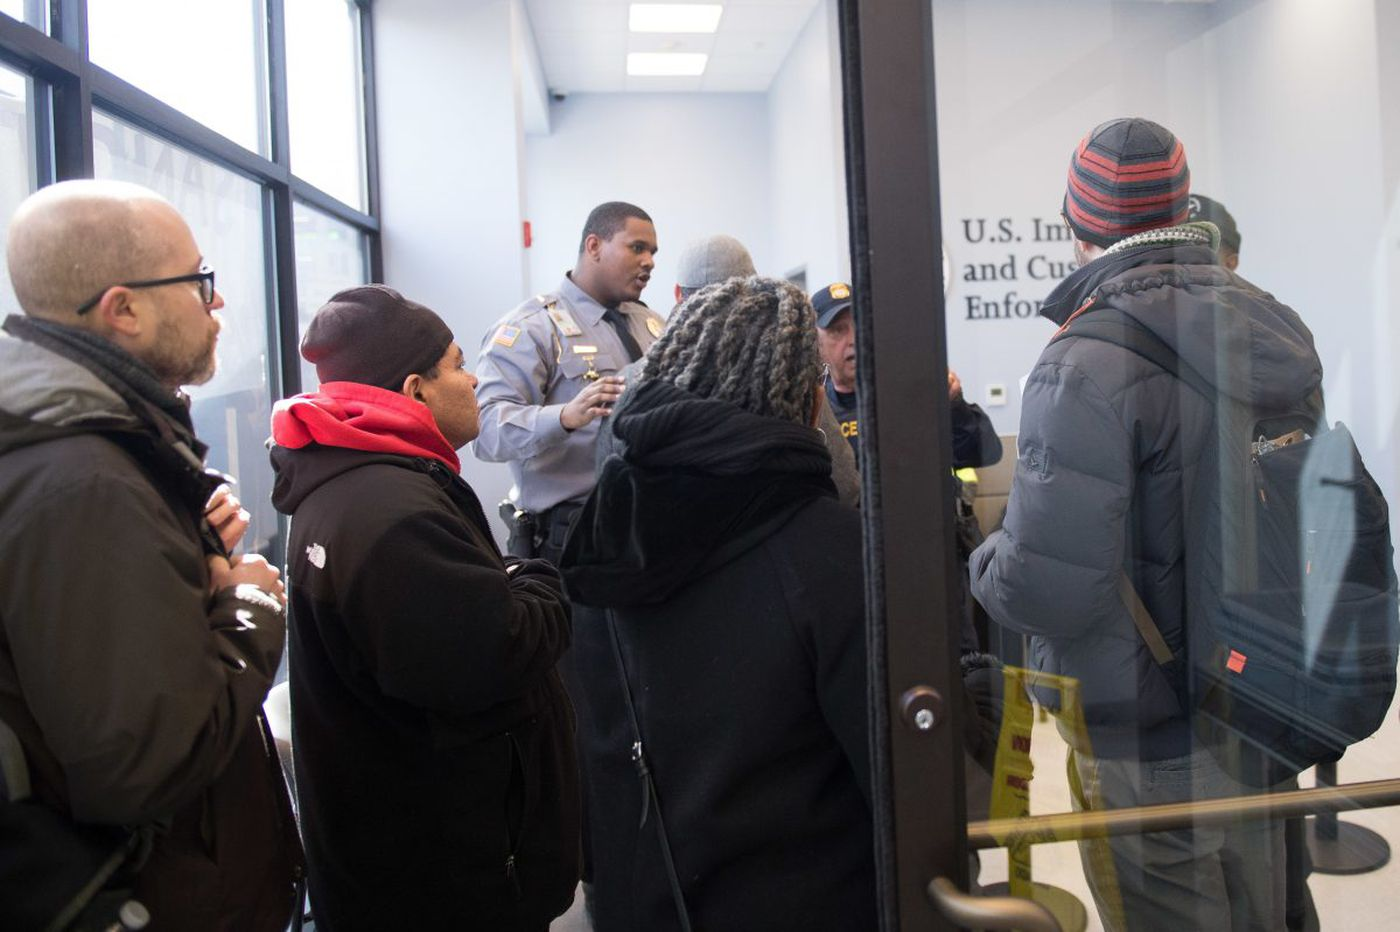 In an ICE lobby in Center City, a microcosm of immigration battles